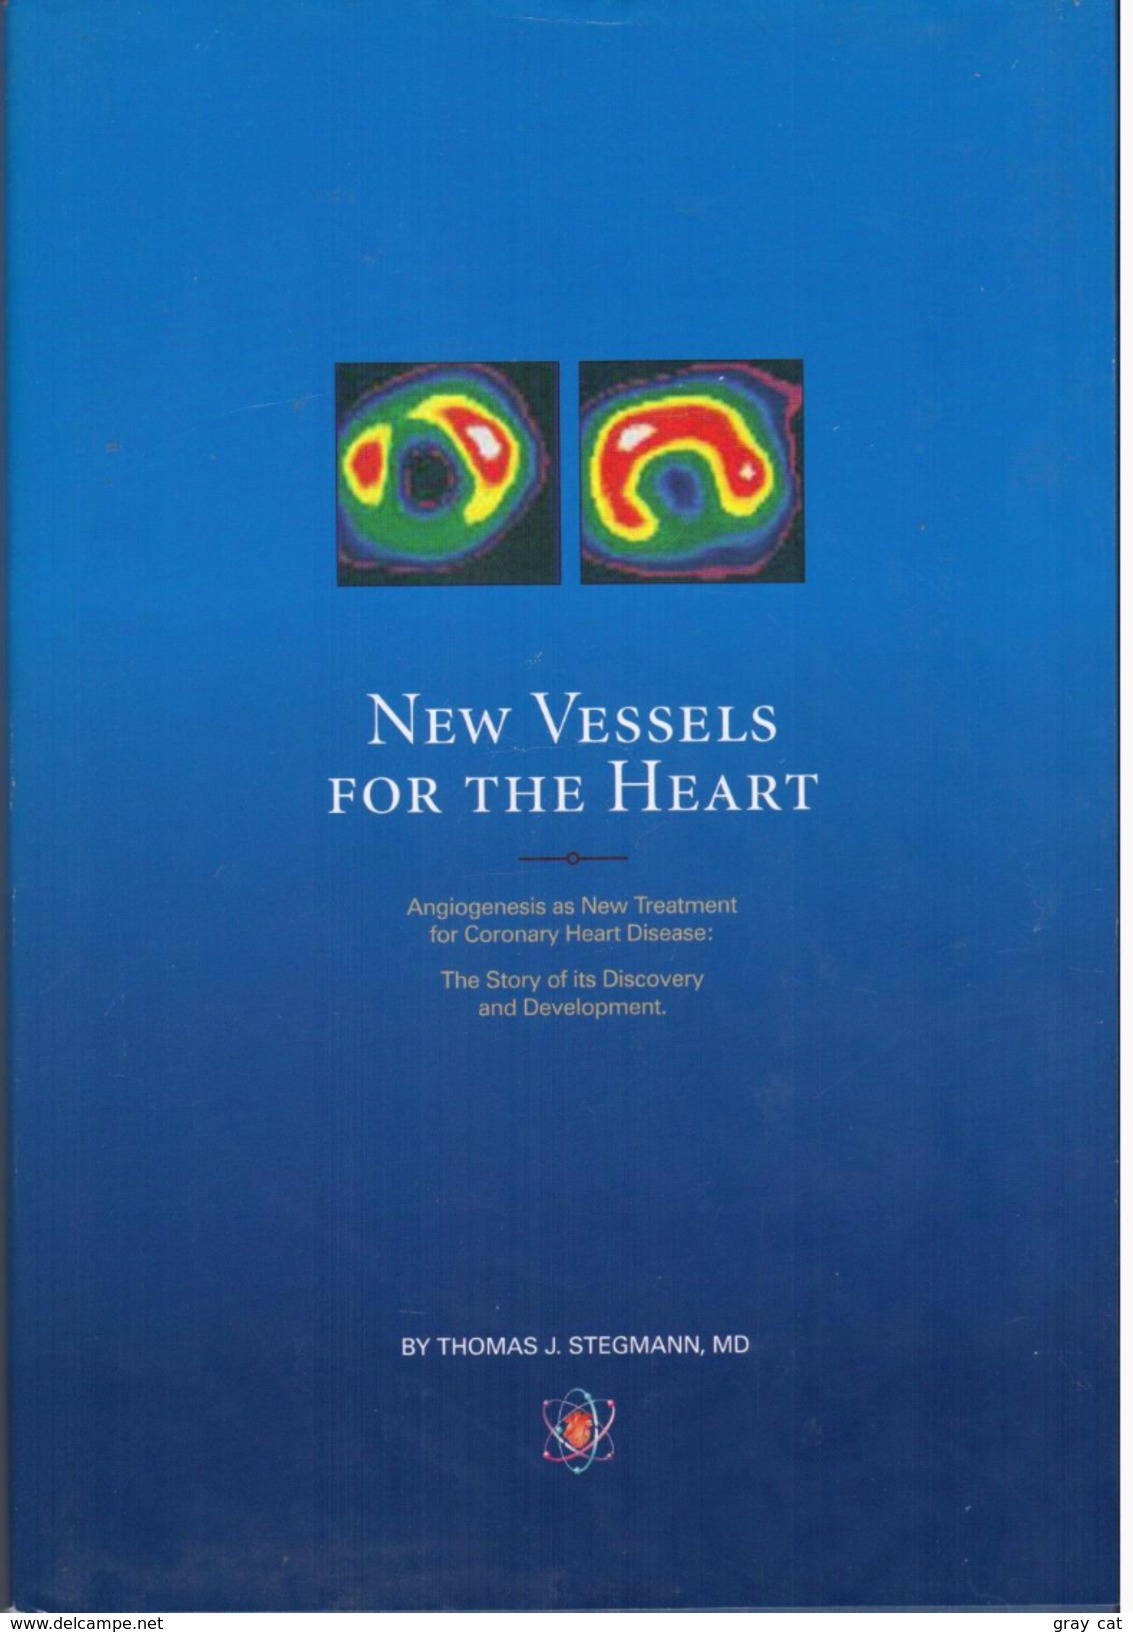 New Vessels For The Heart: Angiogenesis As New Treatment For Coronary Heart By Thomas J. Stegmann (ISBN 9780976558309) - Medical/ Nursing